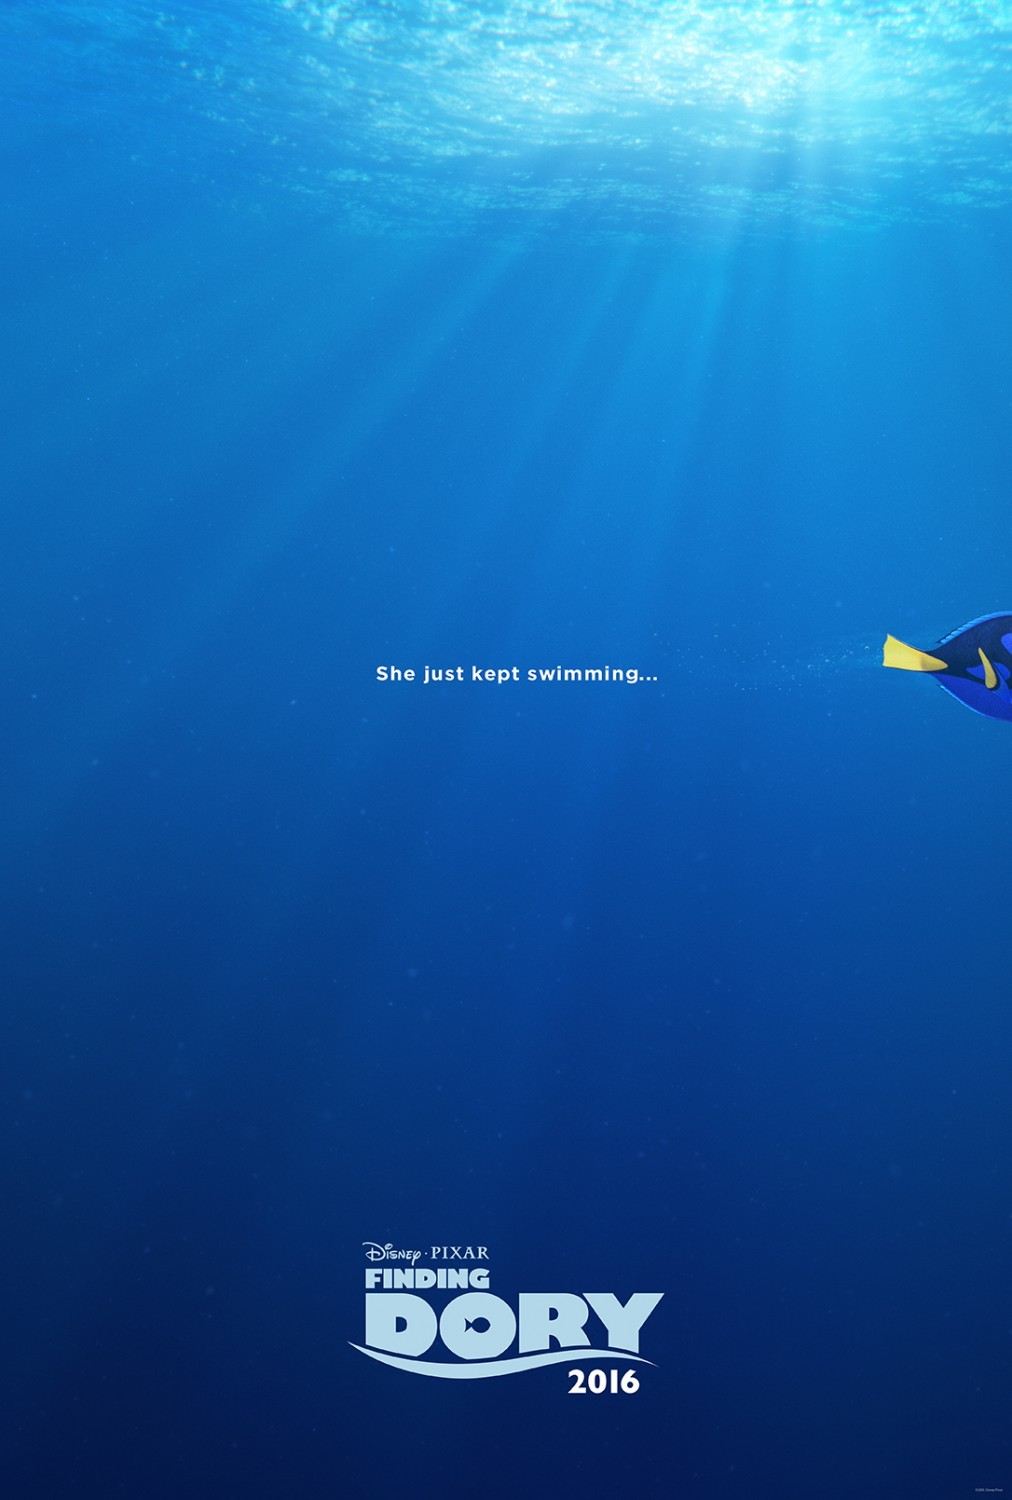 Film Poster: Painted the bubbles trailing behind Dory and some of the ripples on the water surface.